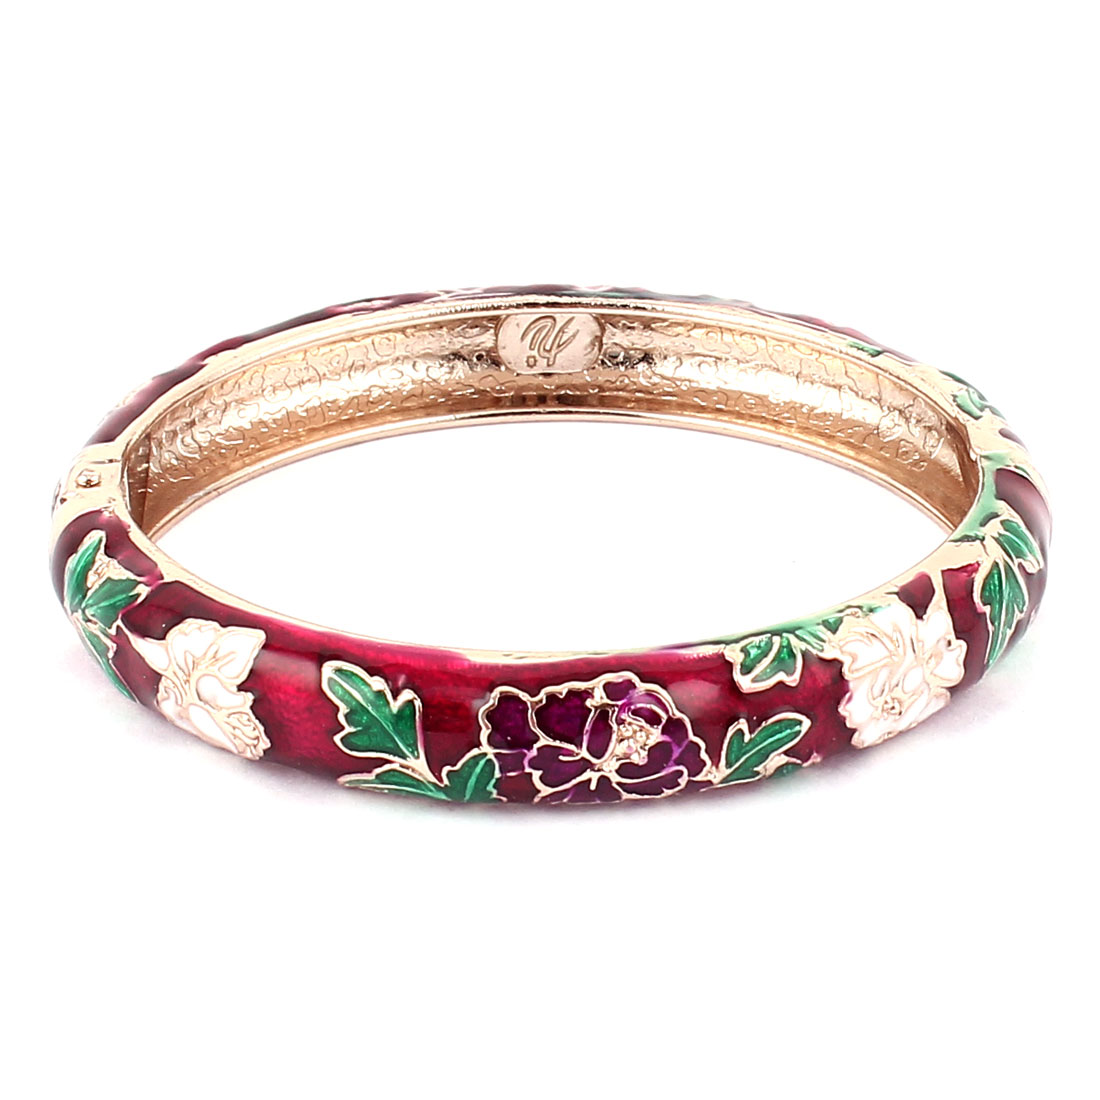 Vintage Style Gold Plated Hinge Cuff Floral Enamel Bangle Bracelet Jewelry